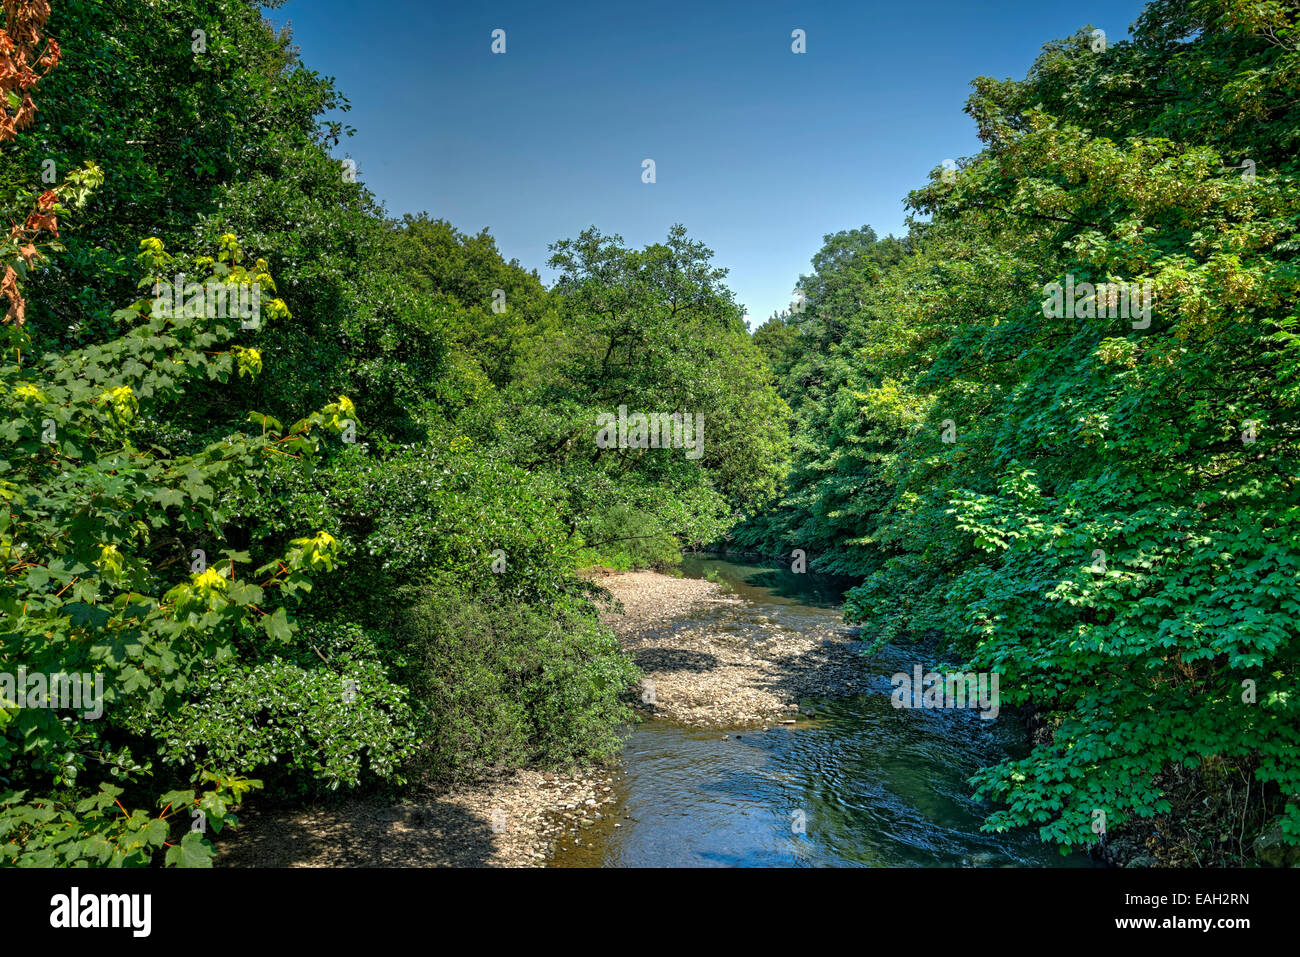 Tree lined river low in water after a long dry spell, exposing the gravel bed of the river. Stock Photo